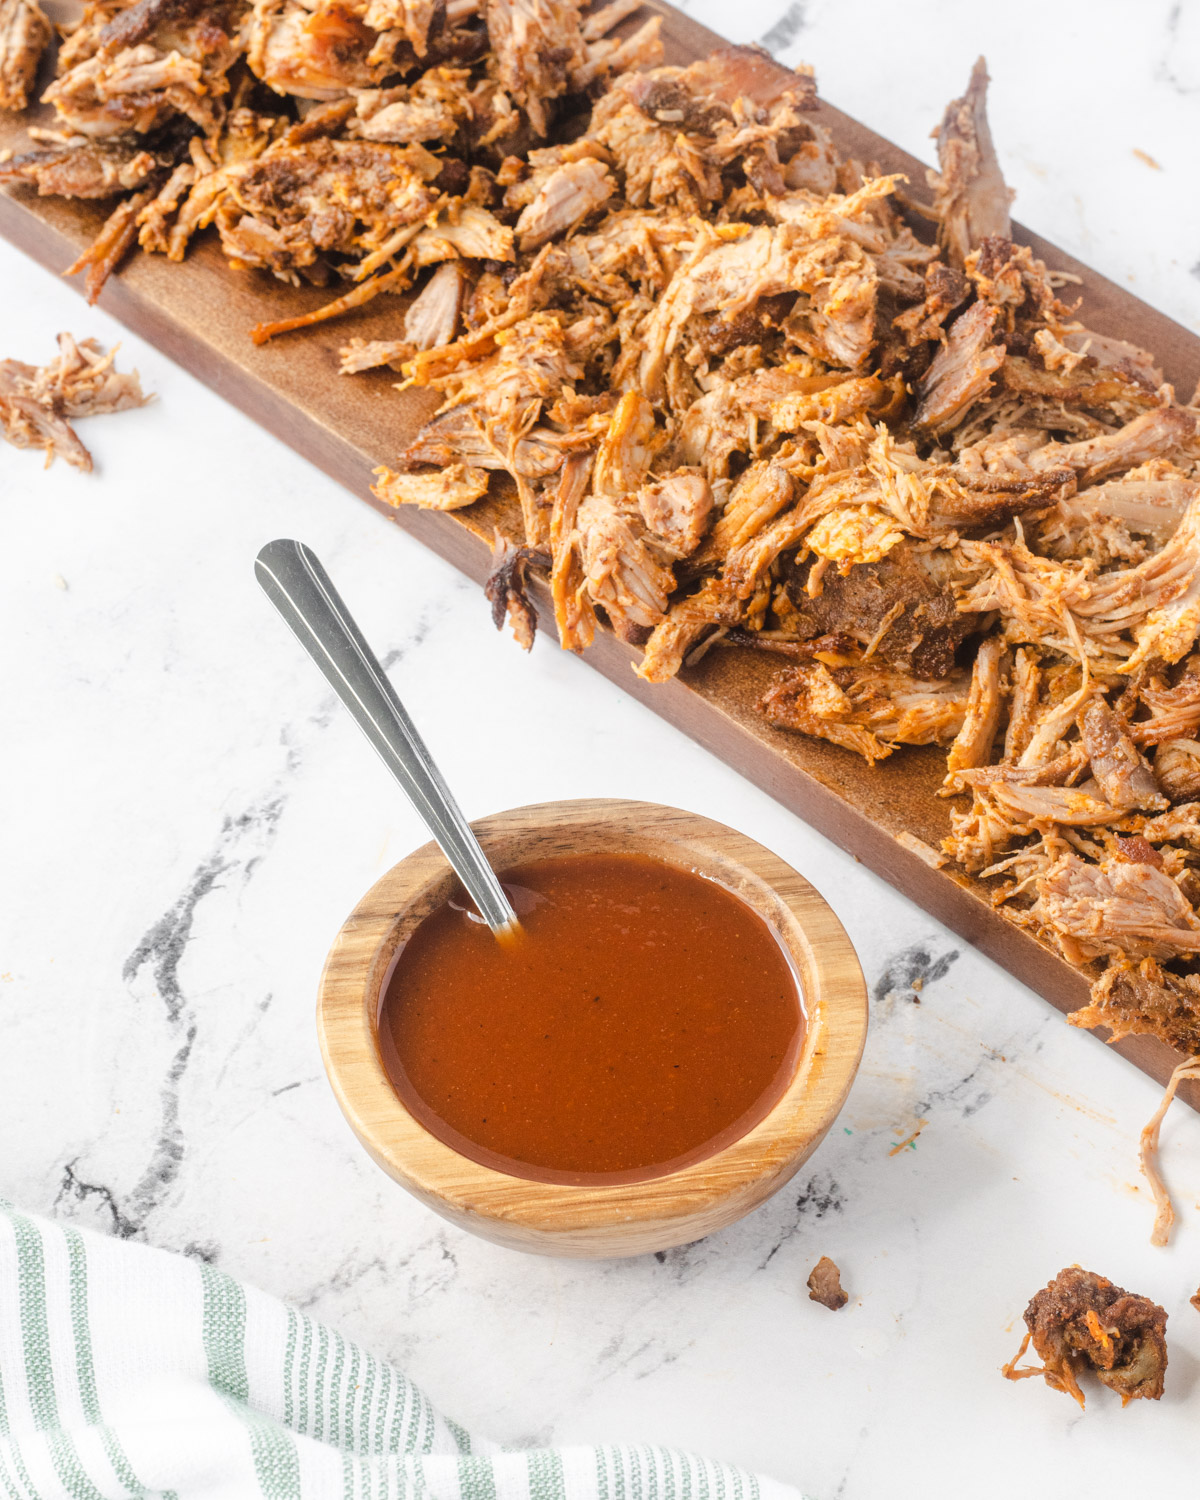 wooden bowl with bbq sauce in front of a wooden platter of shredded pork.